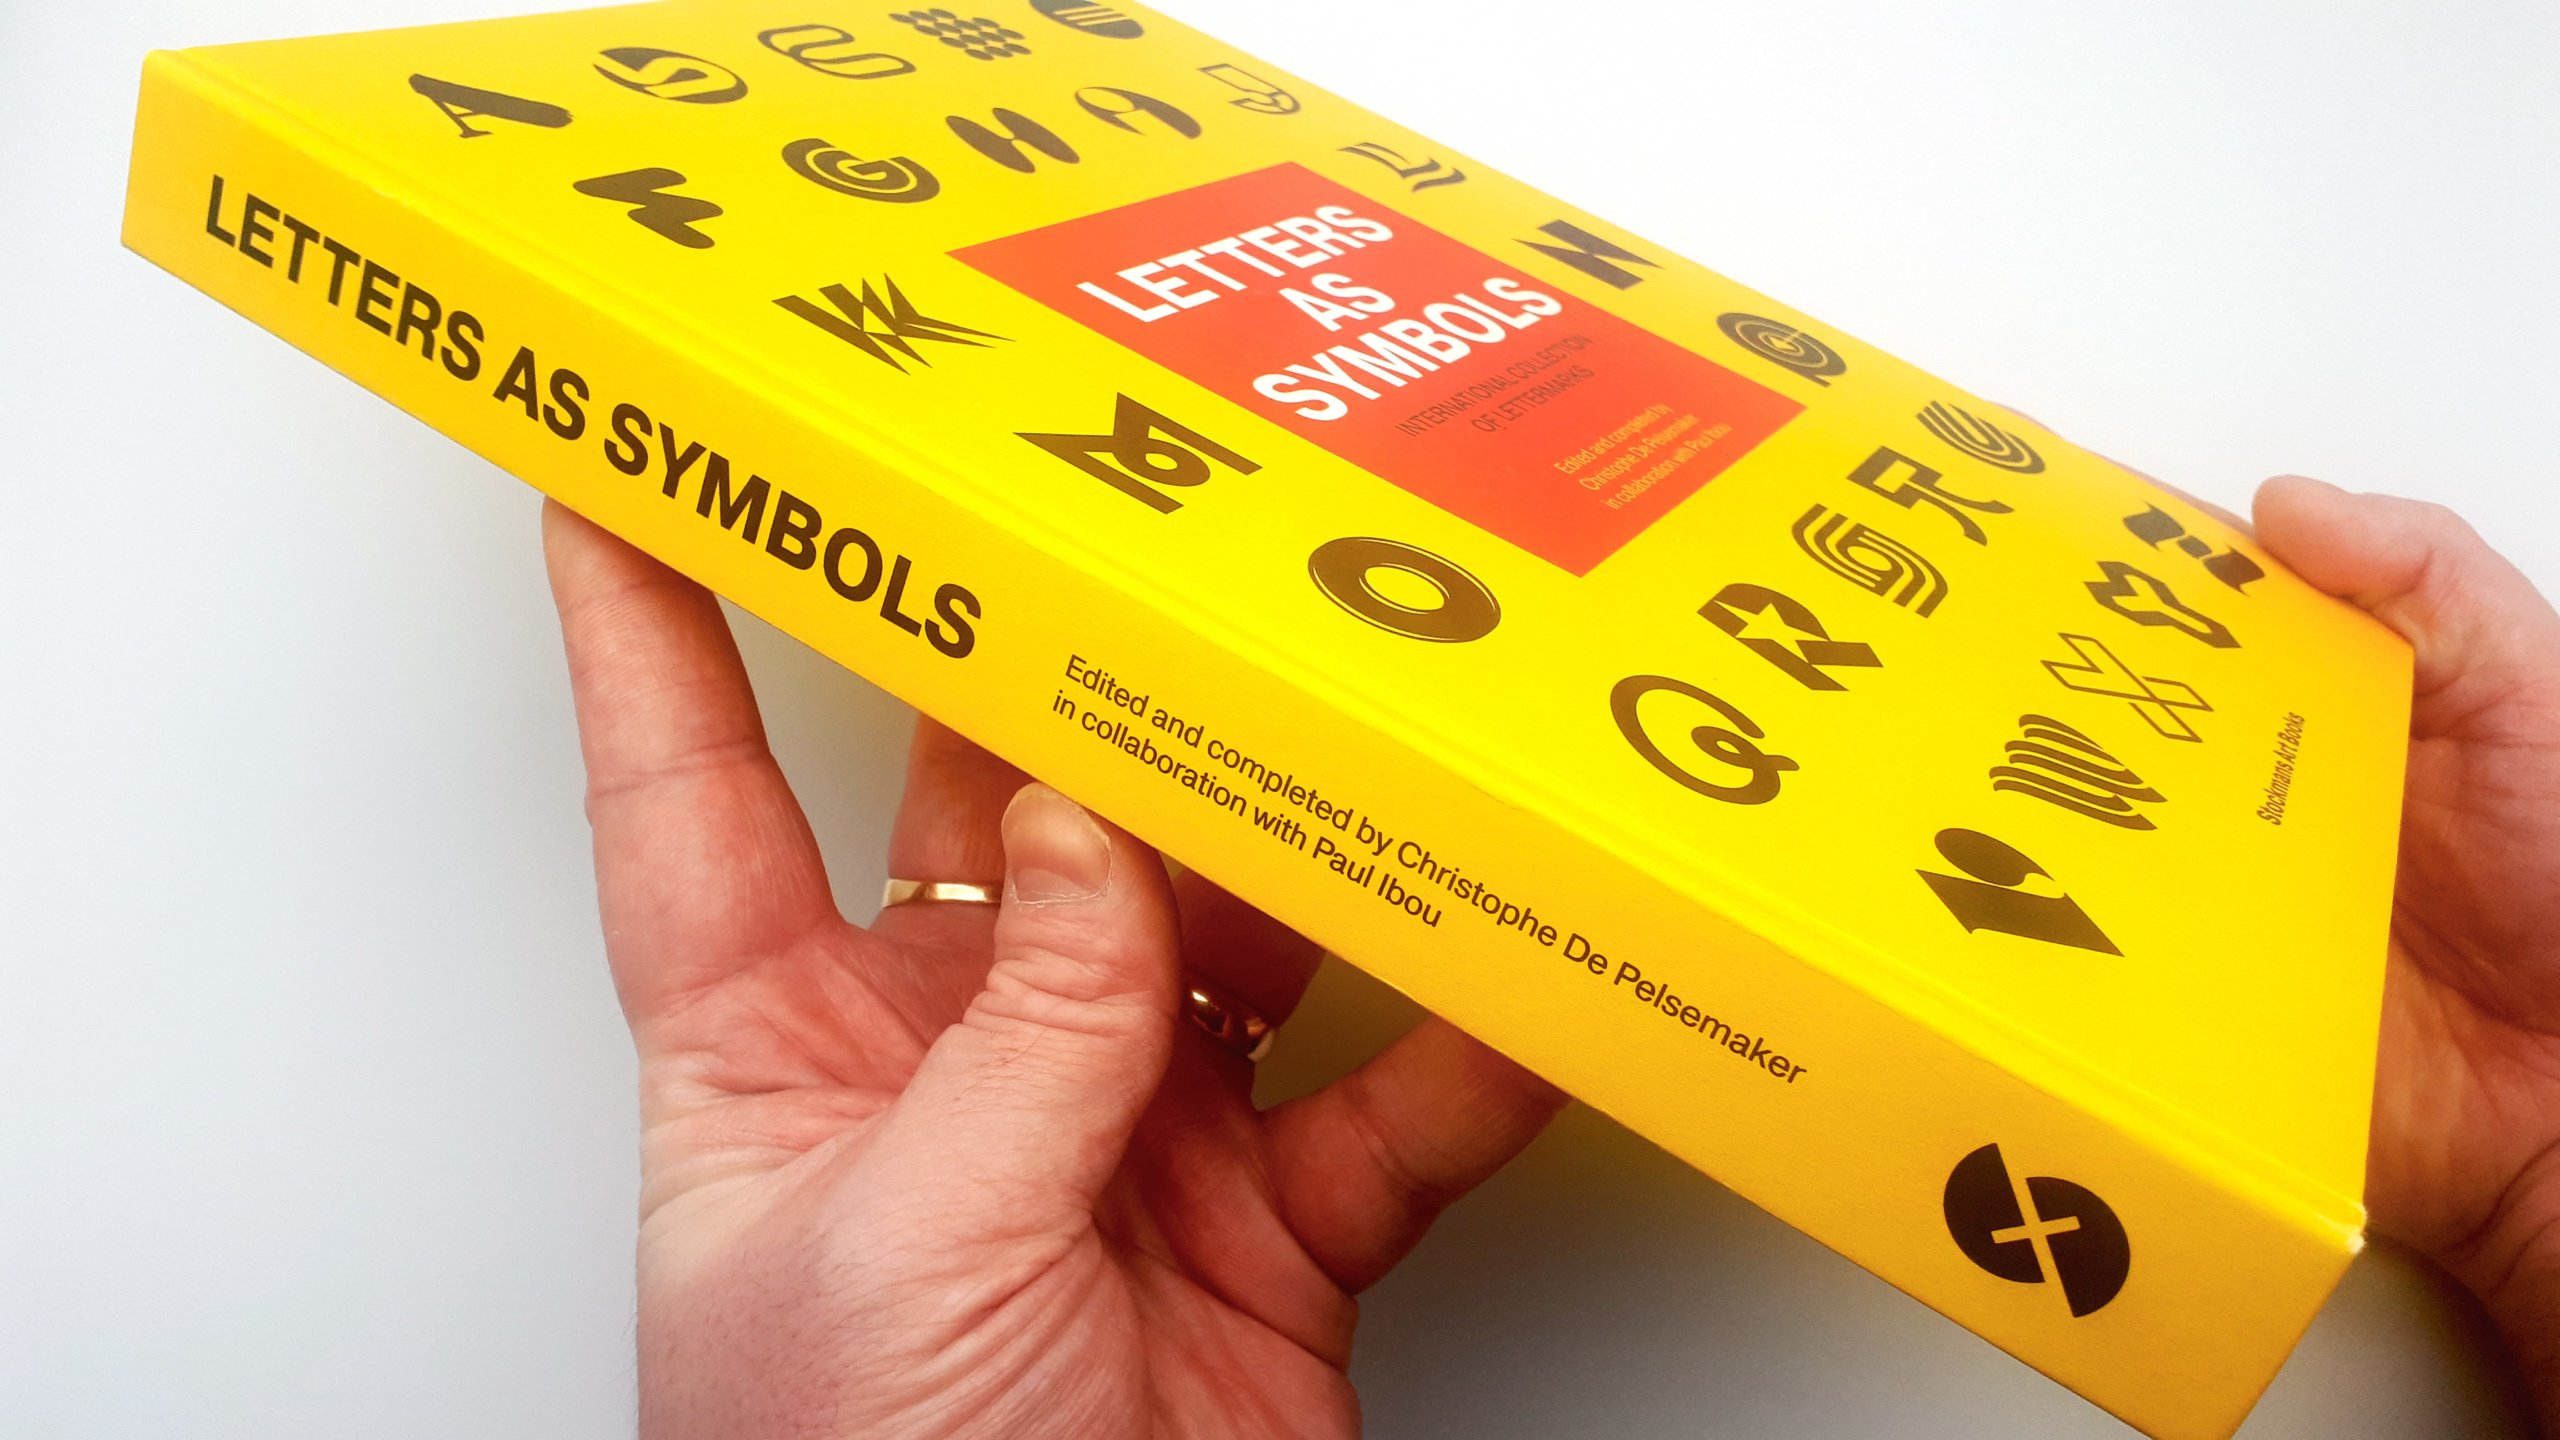 Letters As Symbols by Christophe De Pelsemaker and Paul Ibou - Book Review 1